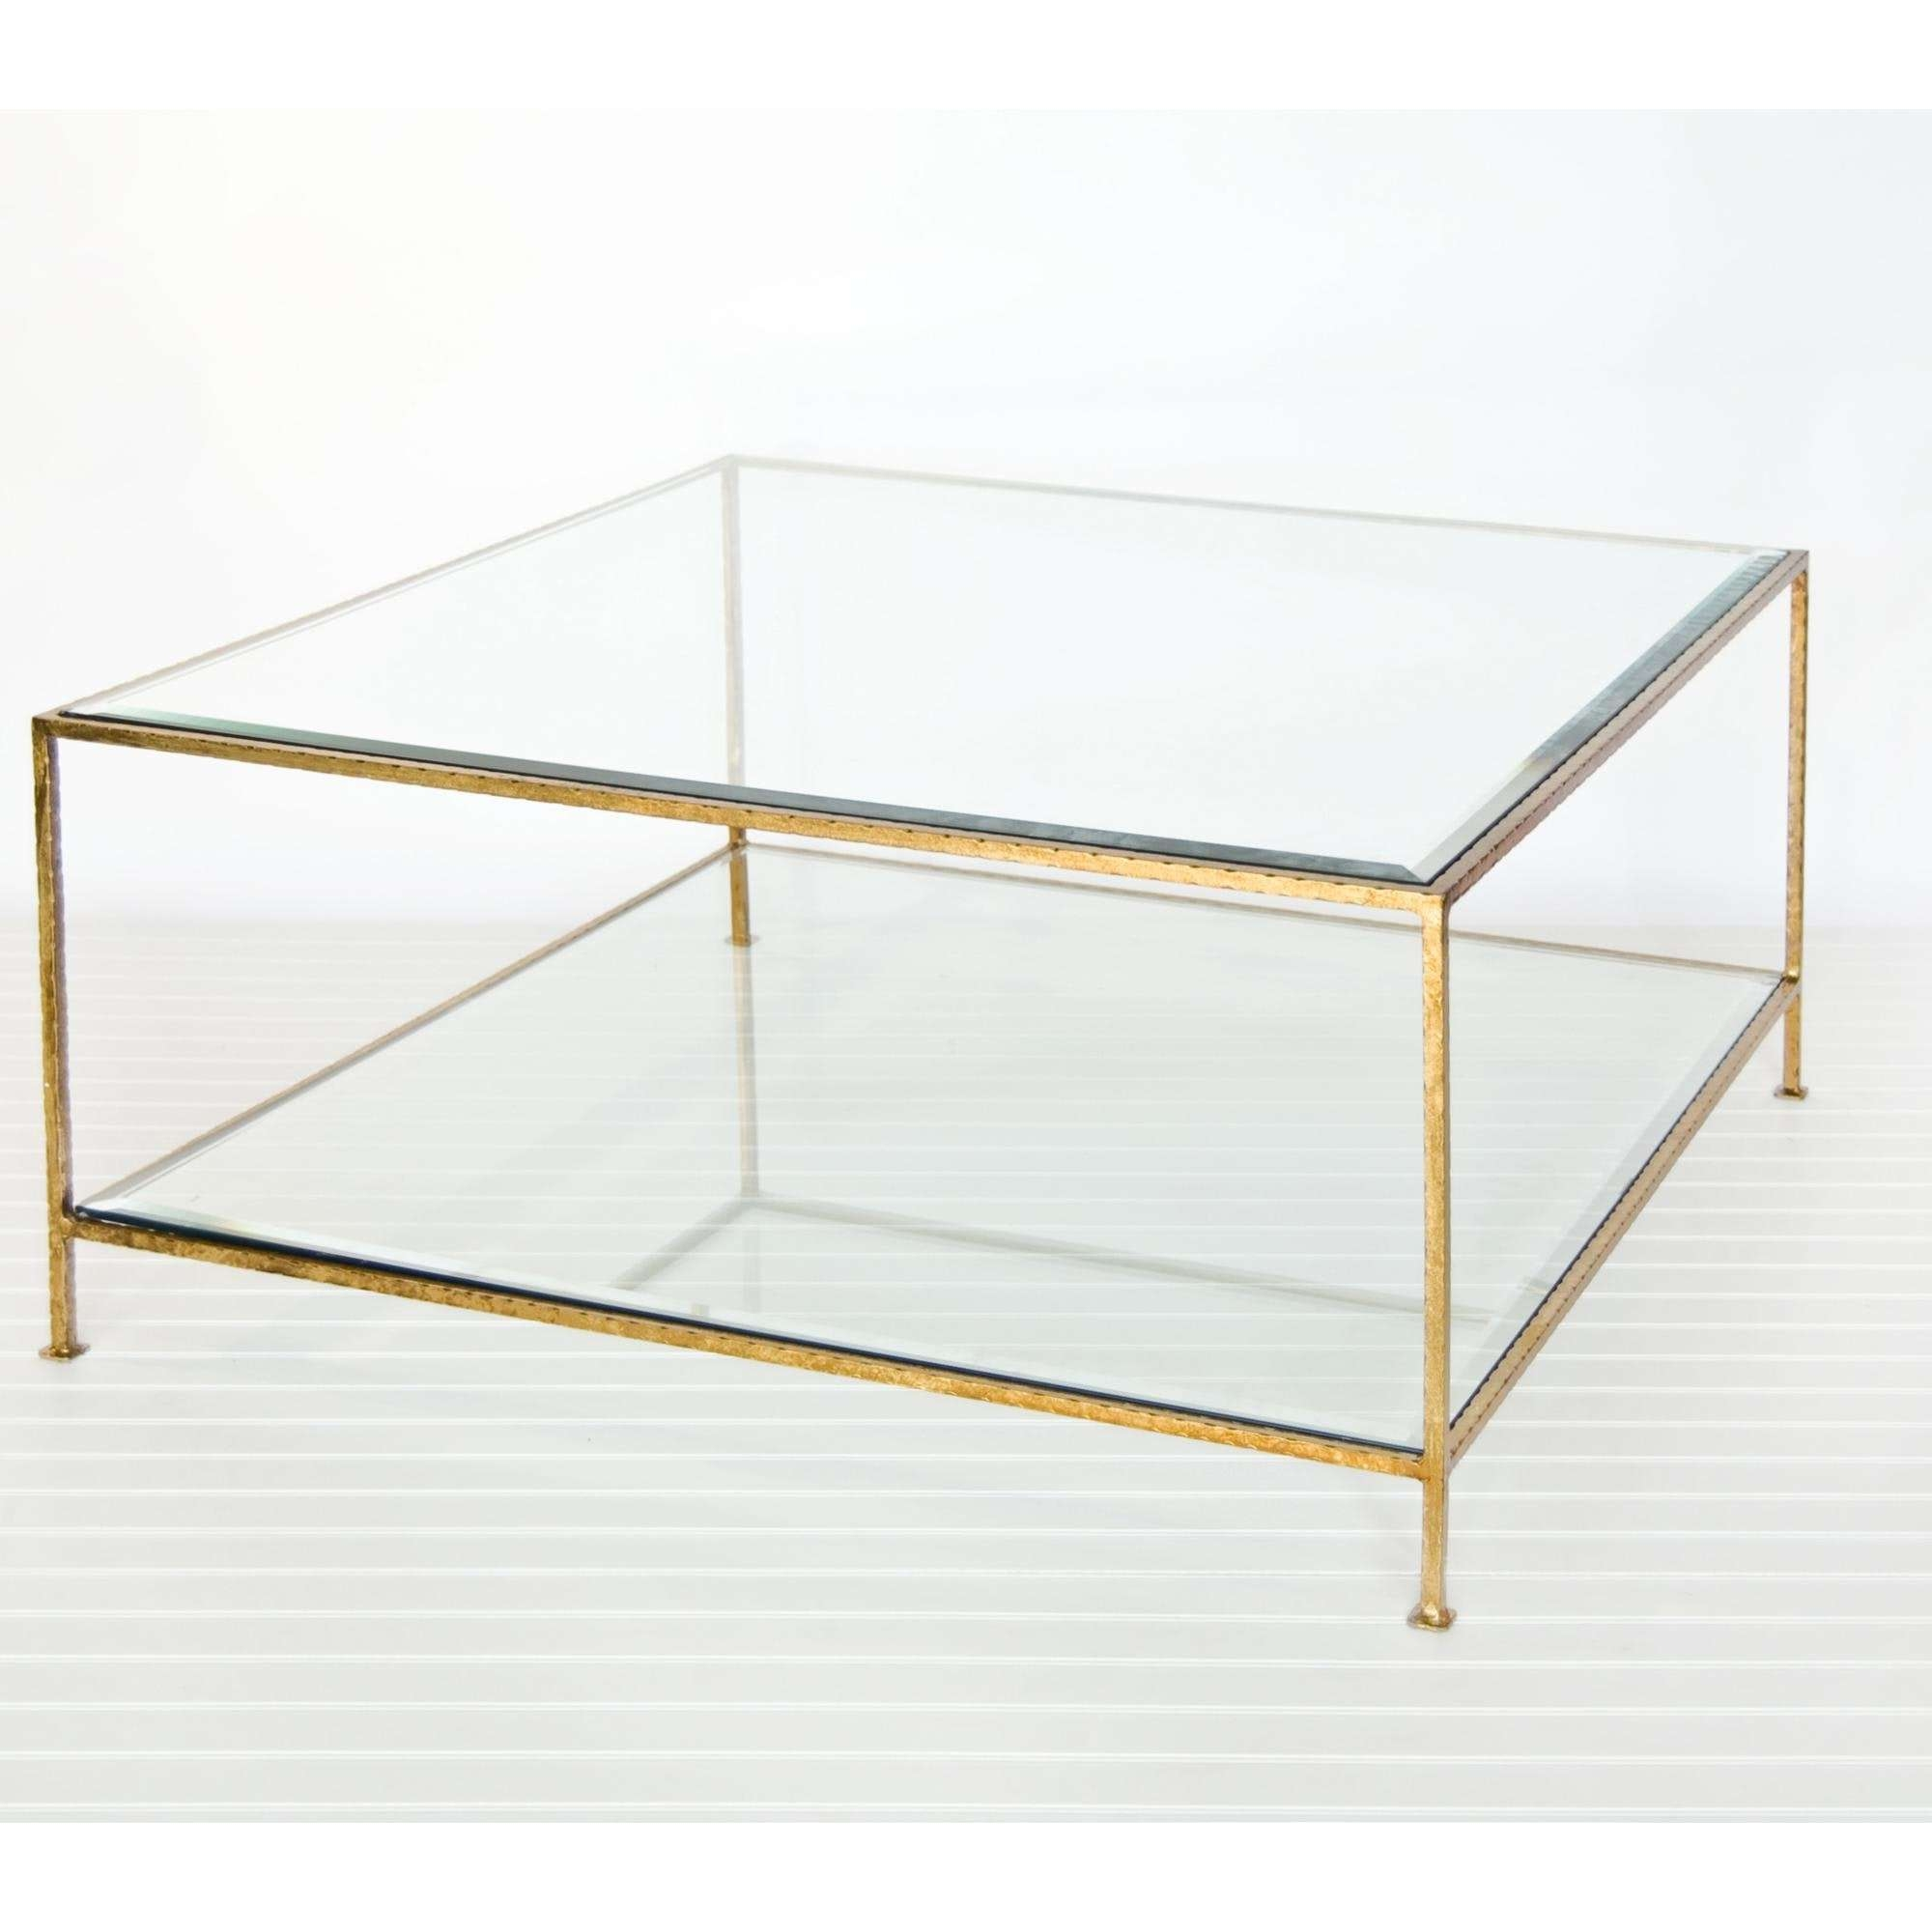 Abstract Bronze And Glass Coffee Table Mid Century Modern Images Pertaining To Newest Bronze And Glass Coffee Tables (Gallery 9 of 20)